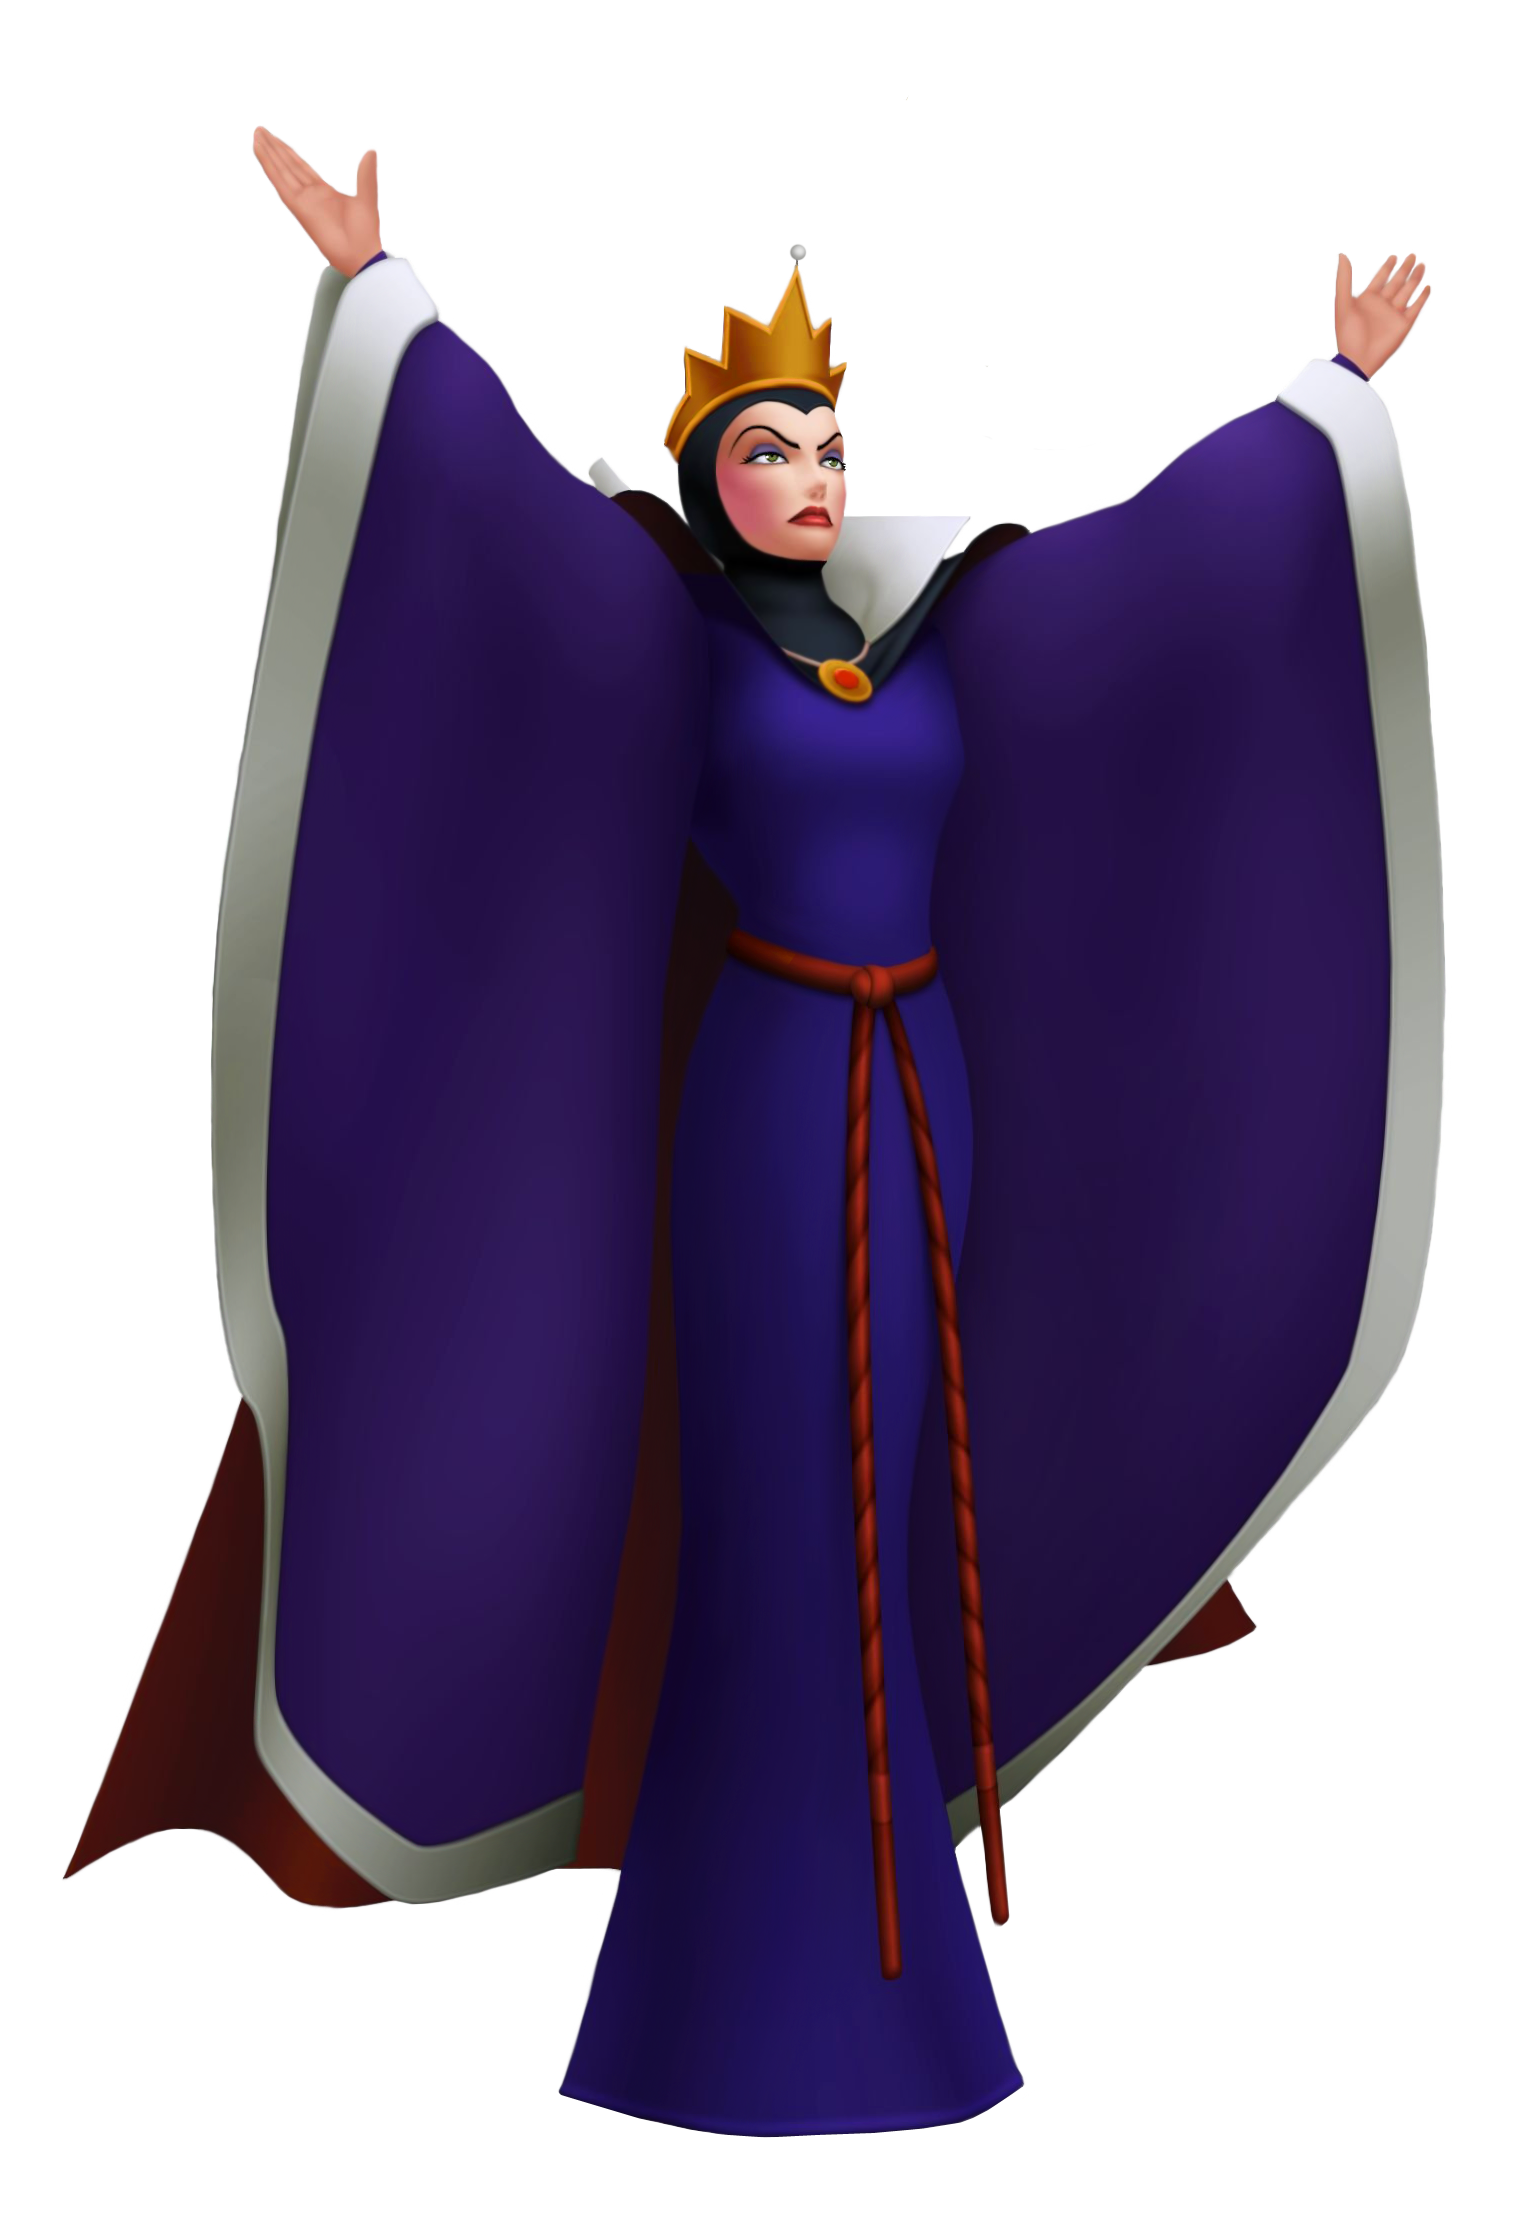 Evil background png. Queen grimhild snow white